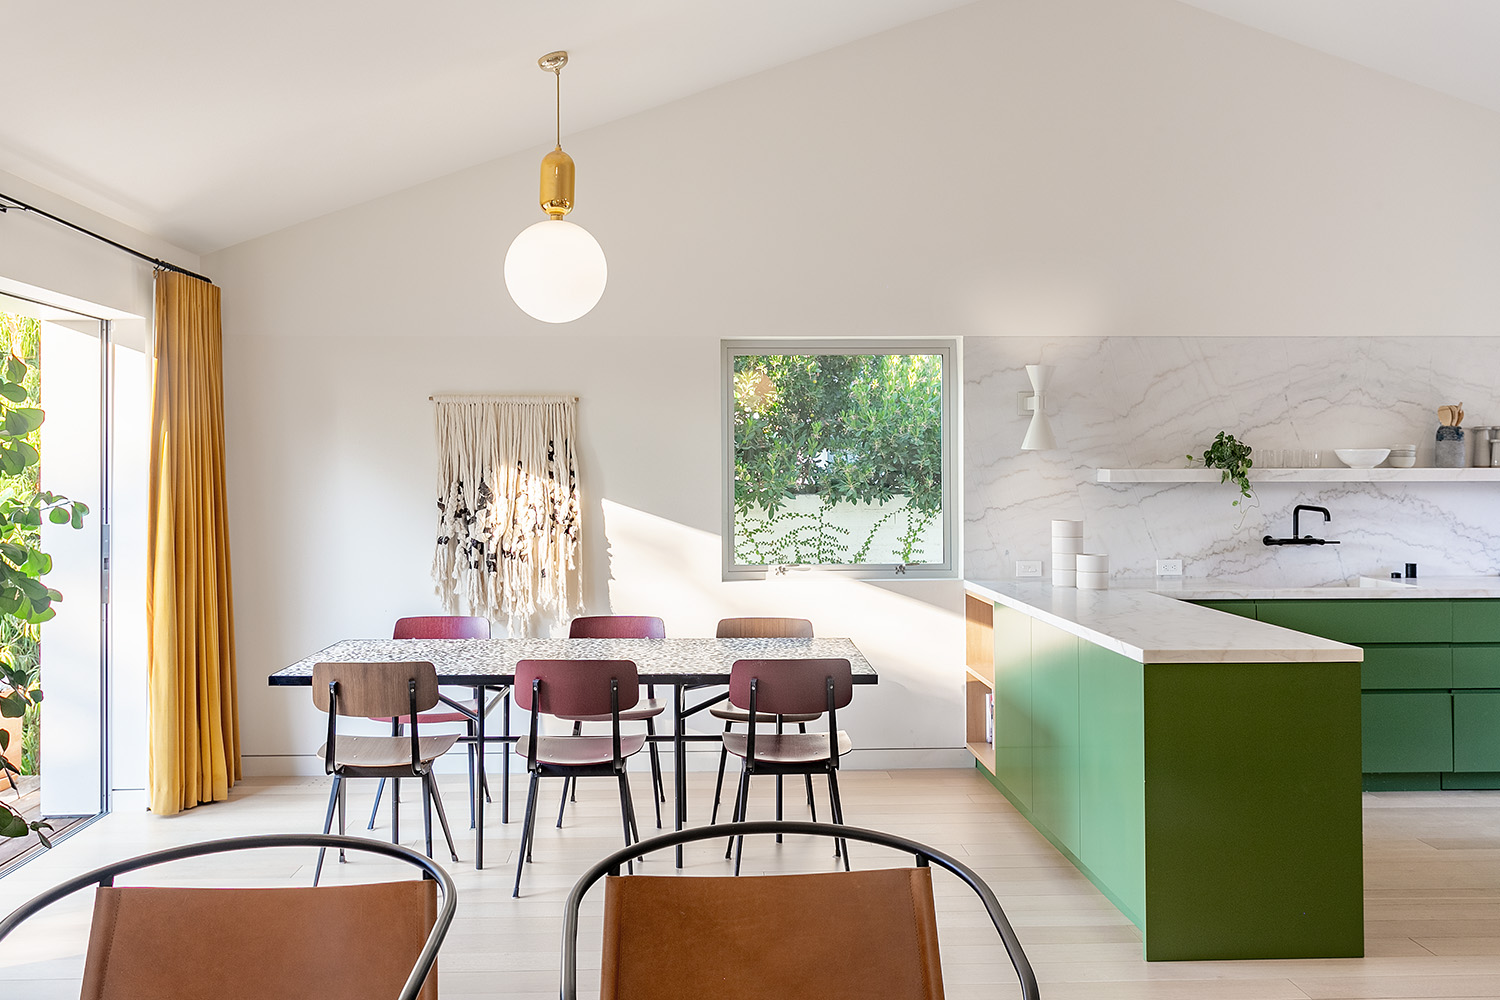 Bright living area with green kitchen cabinets and a six-seat dining set.